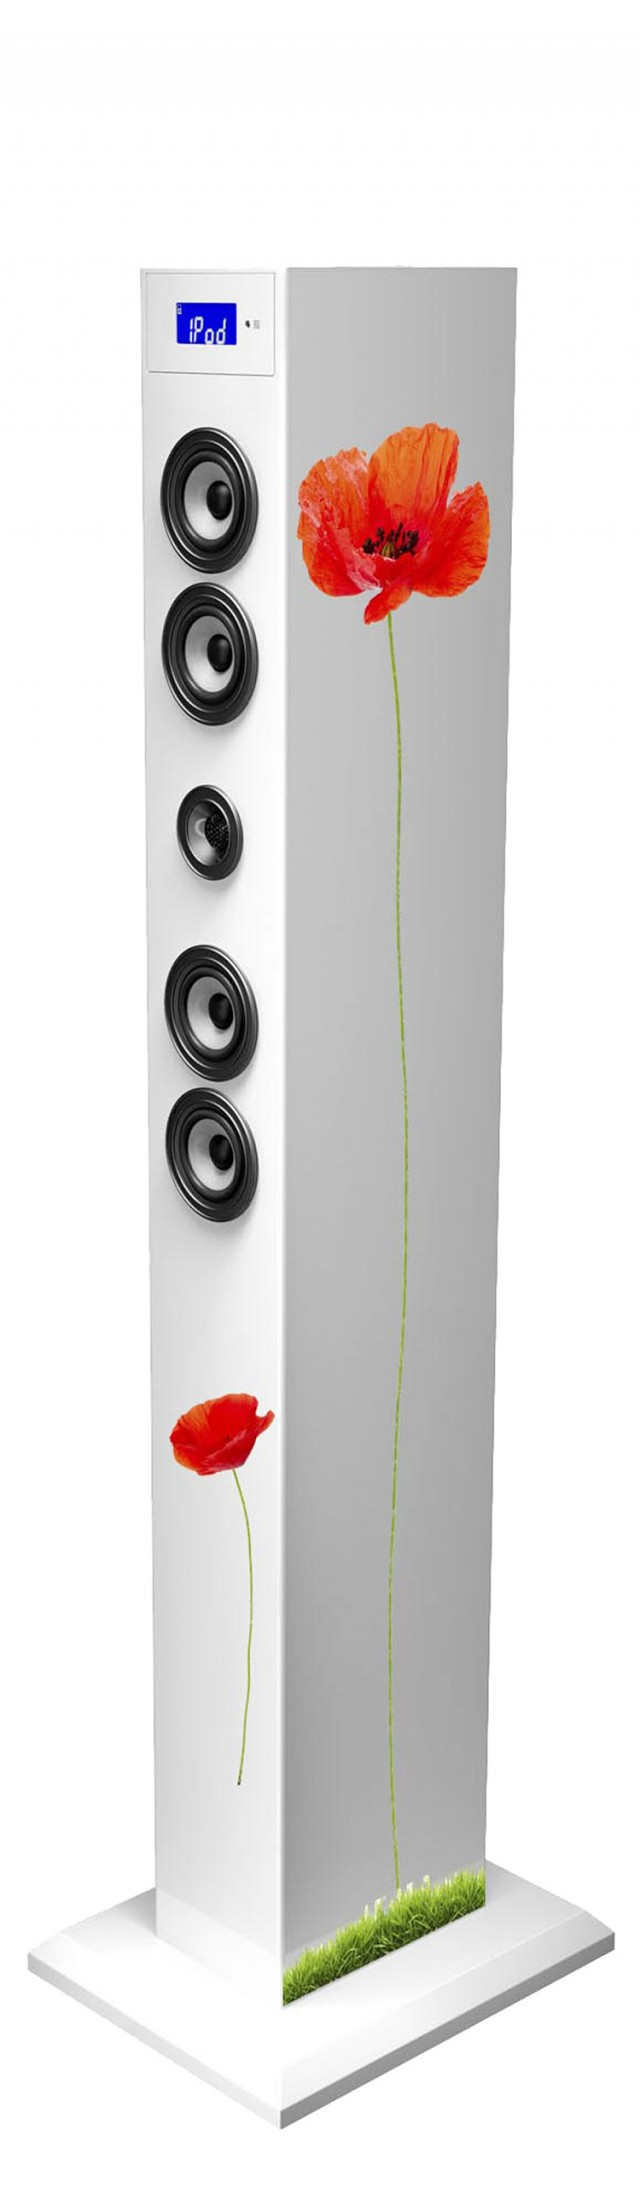 Multimedia tower with adaptador Bluetooth (Floral) - Packshot